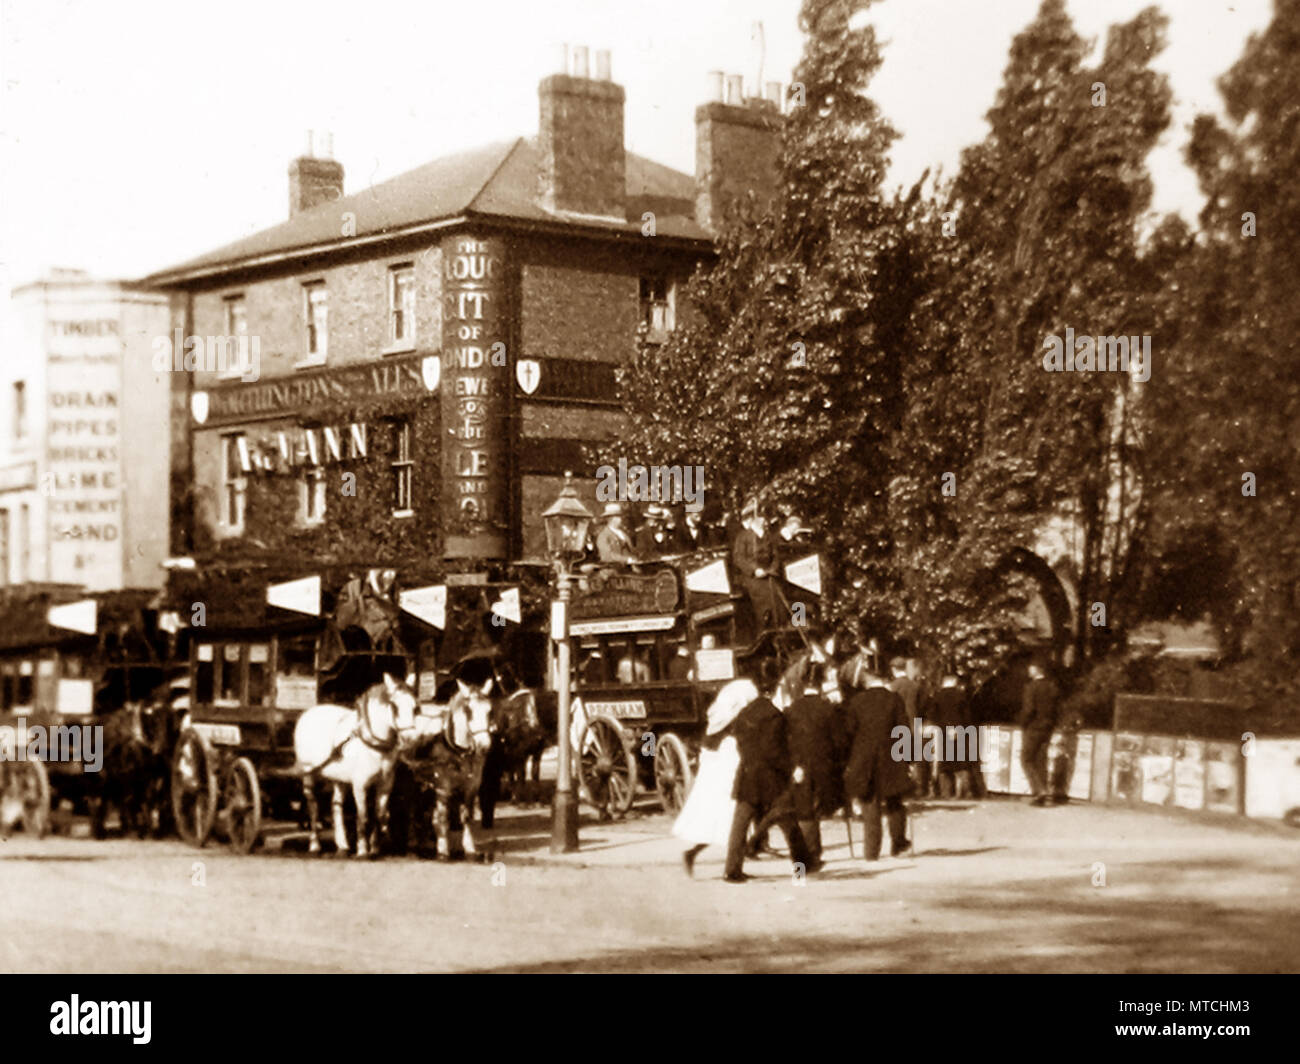 The Plough Inn, Dulwich, London, Victorian period - Stock Image